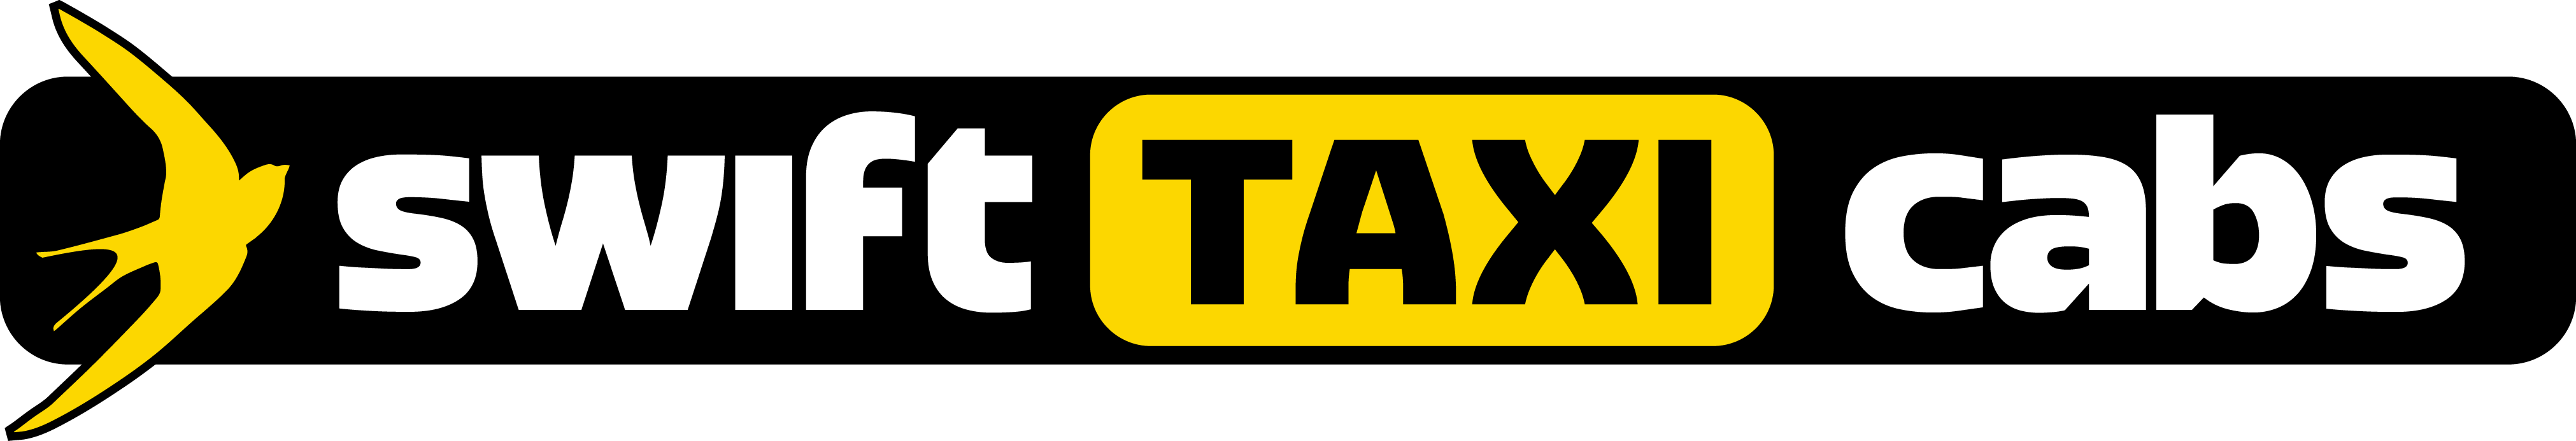 Swift Taxi Cabs